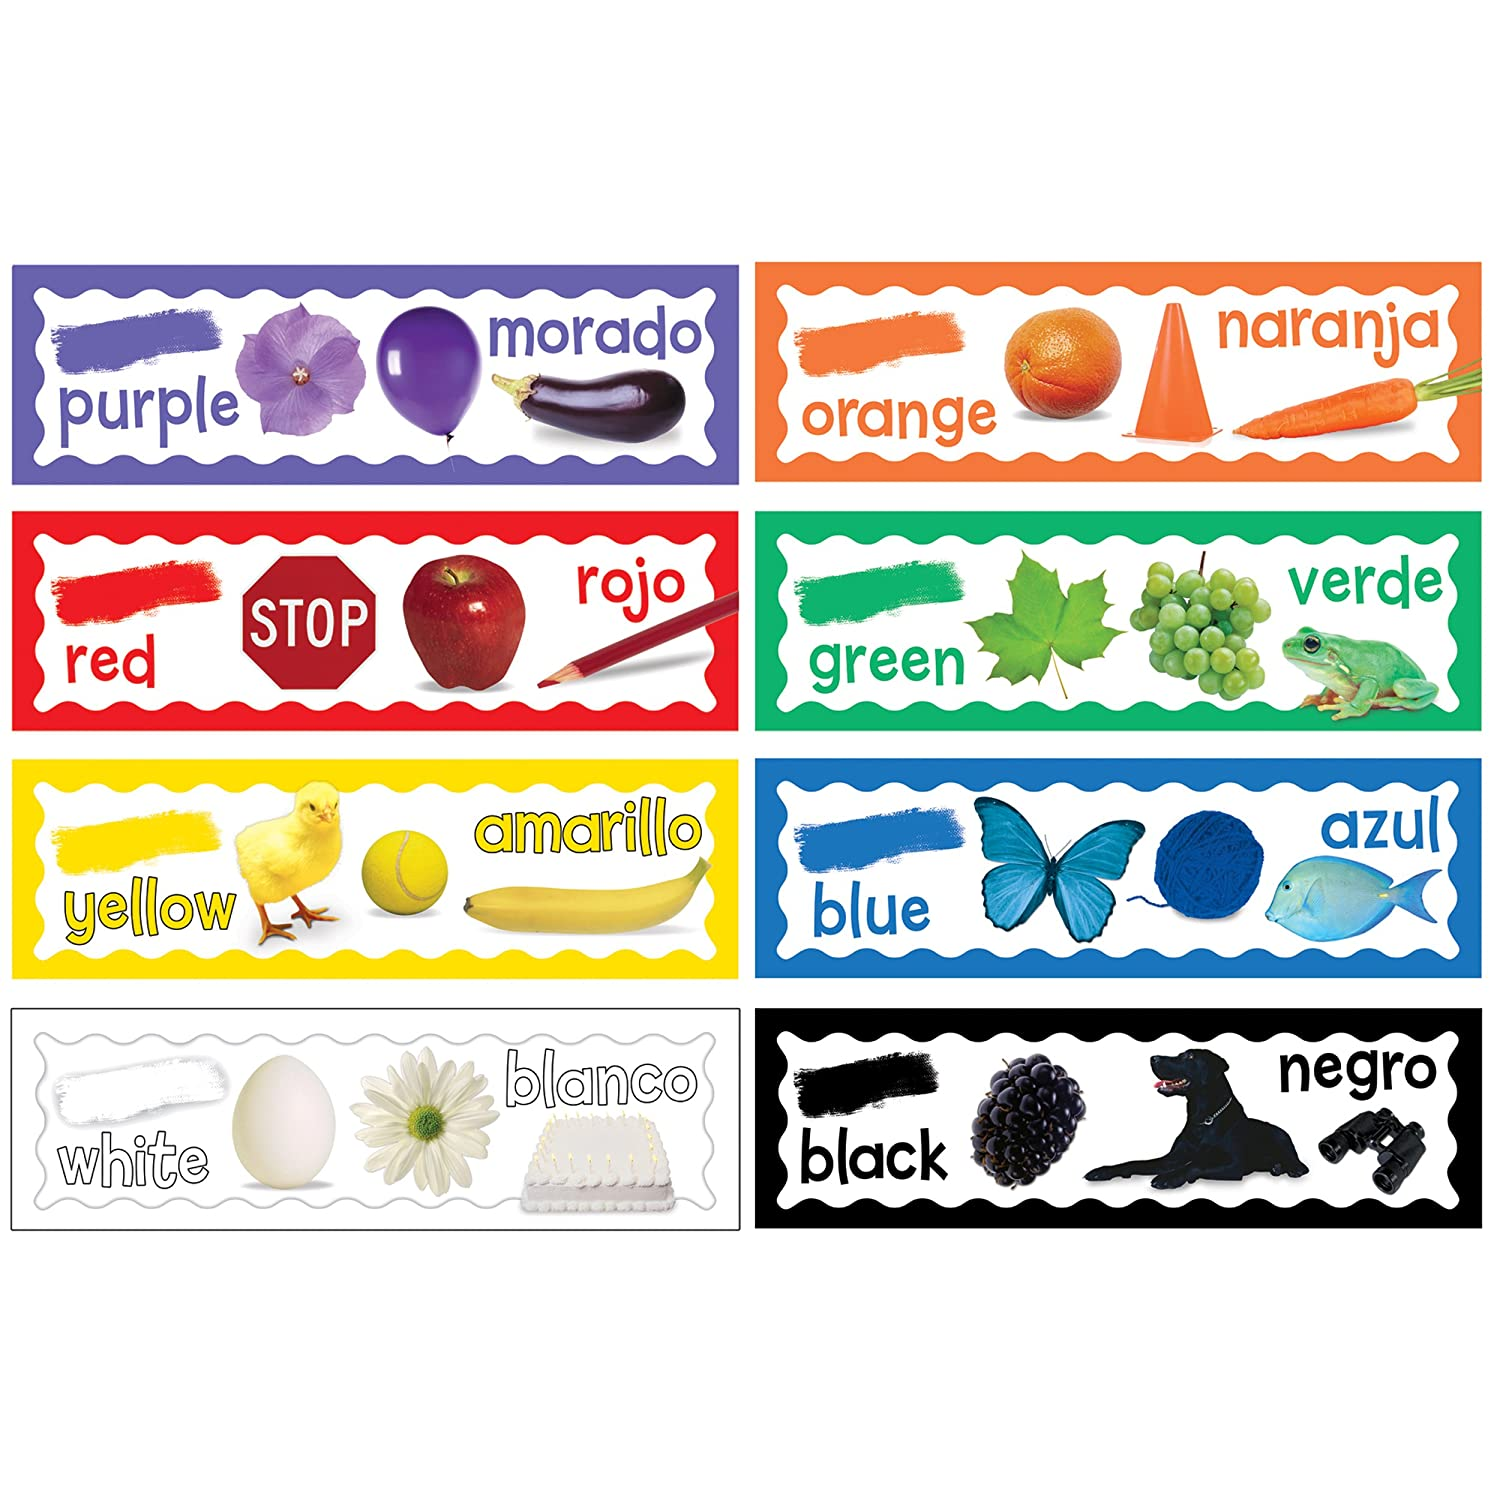 Eureka Back to School Classroom Decorations for Learning Colors, 6.5''x 0.1''x 26'', 8 pc